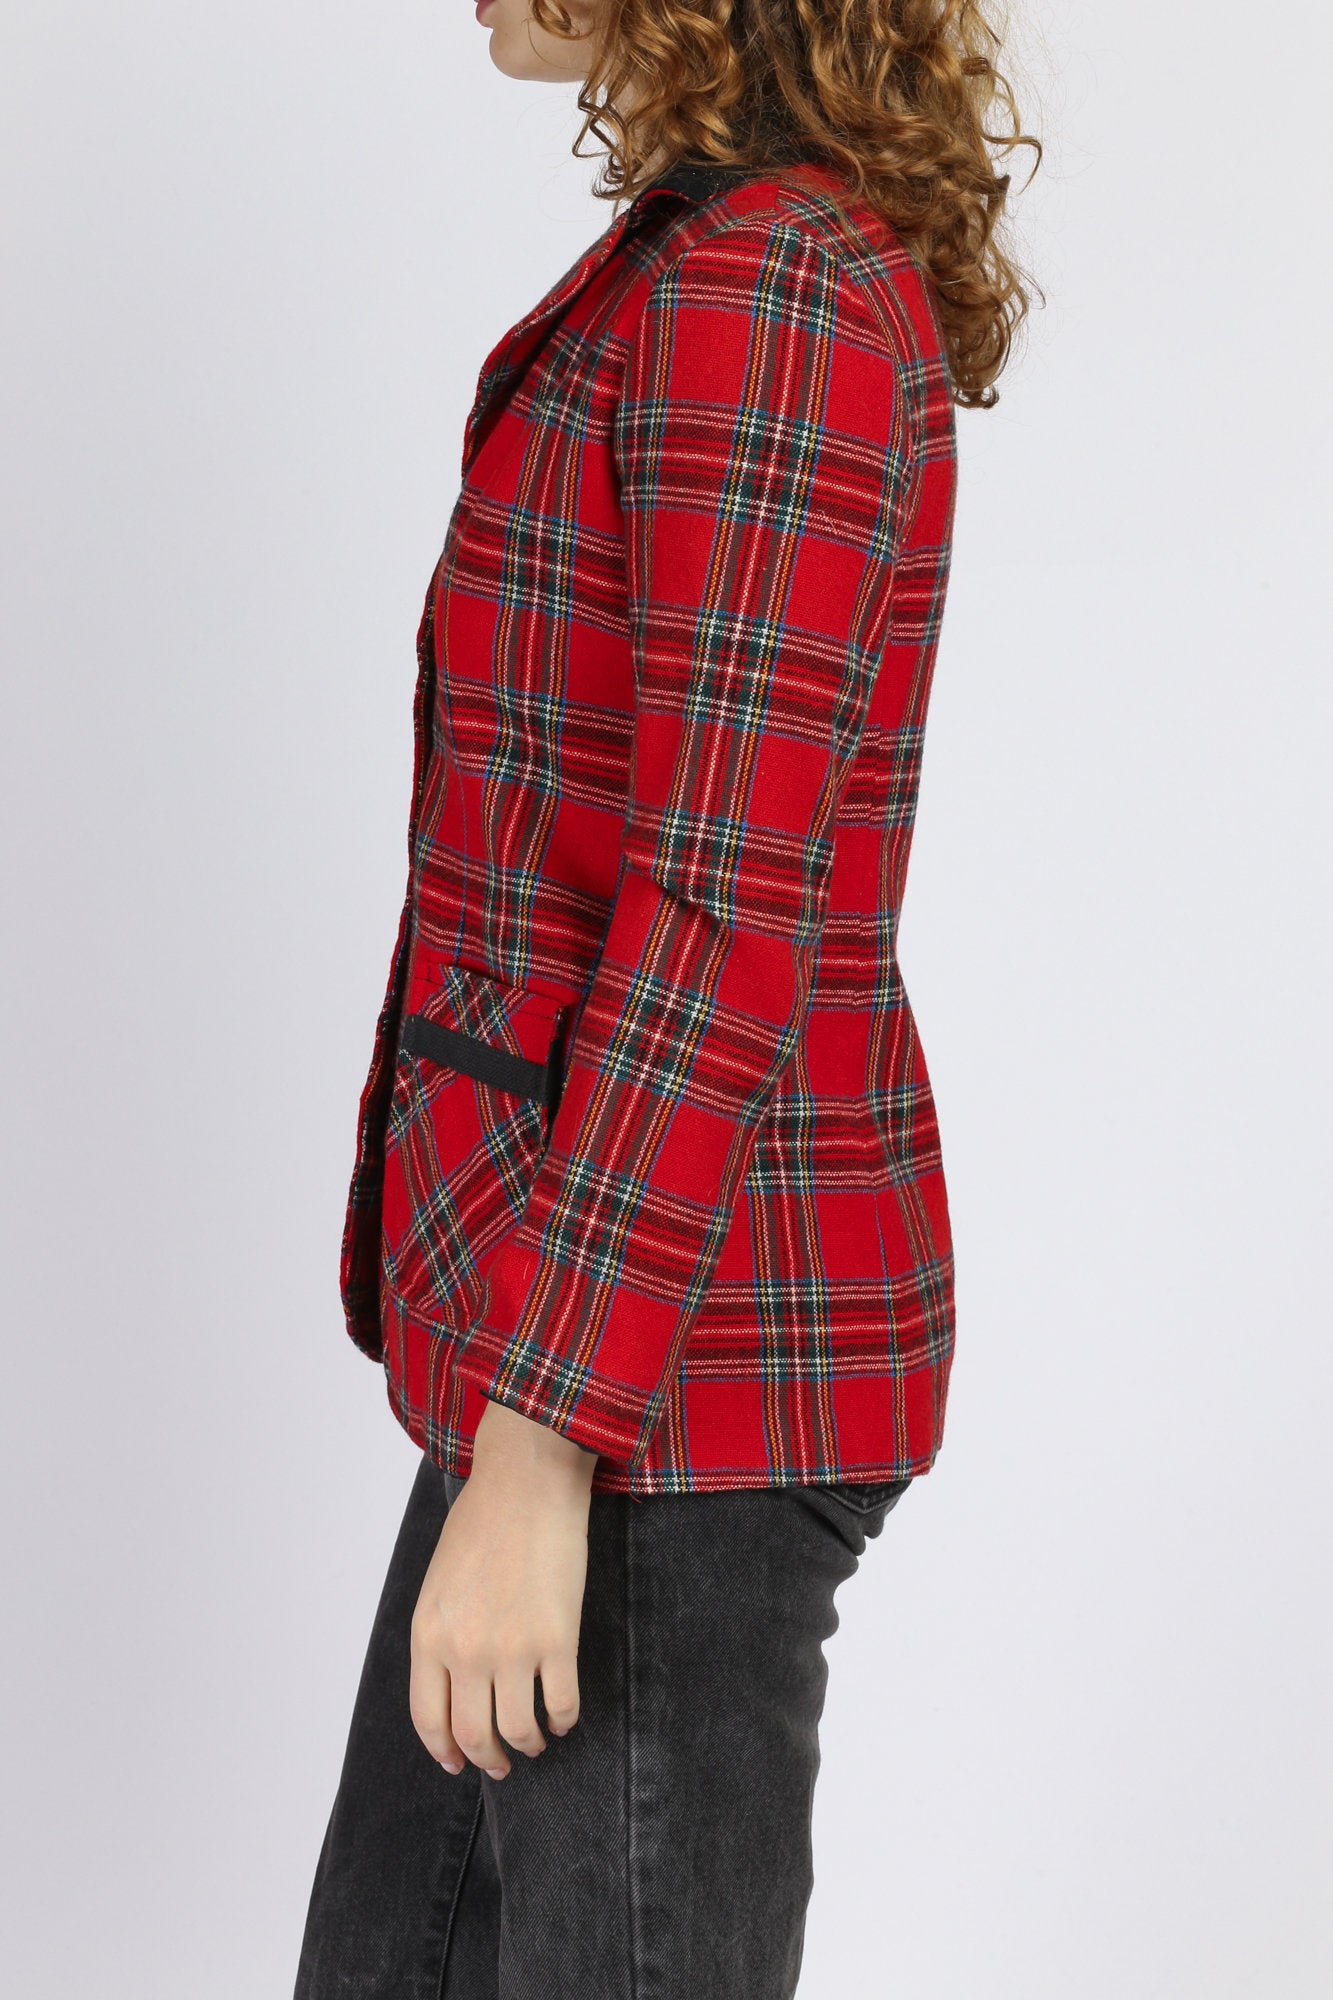 70s Red Plaid Blazer - XS to Small